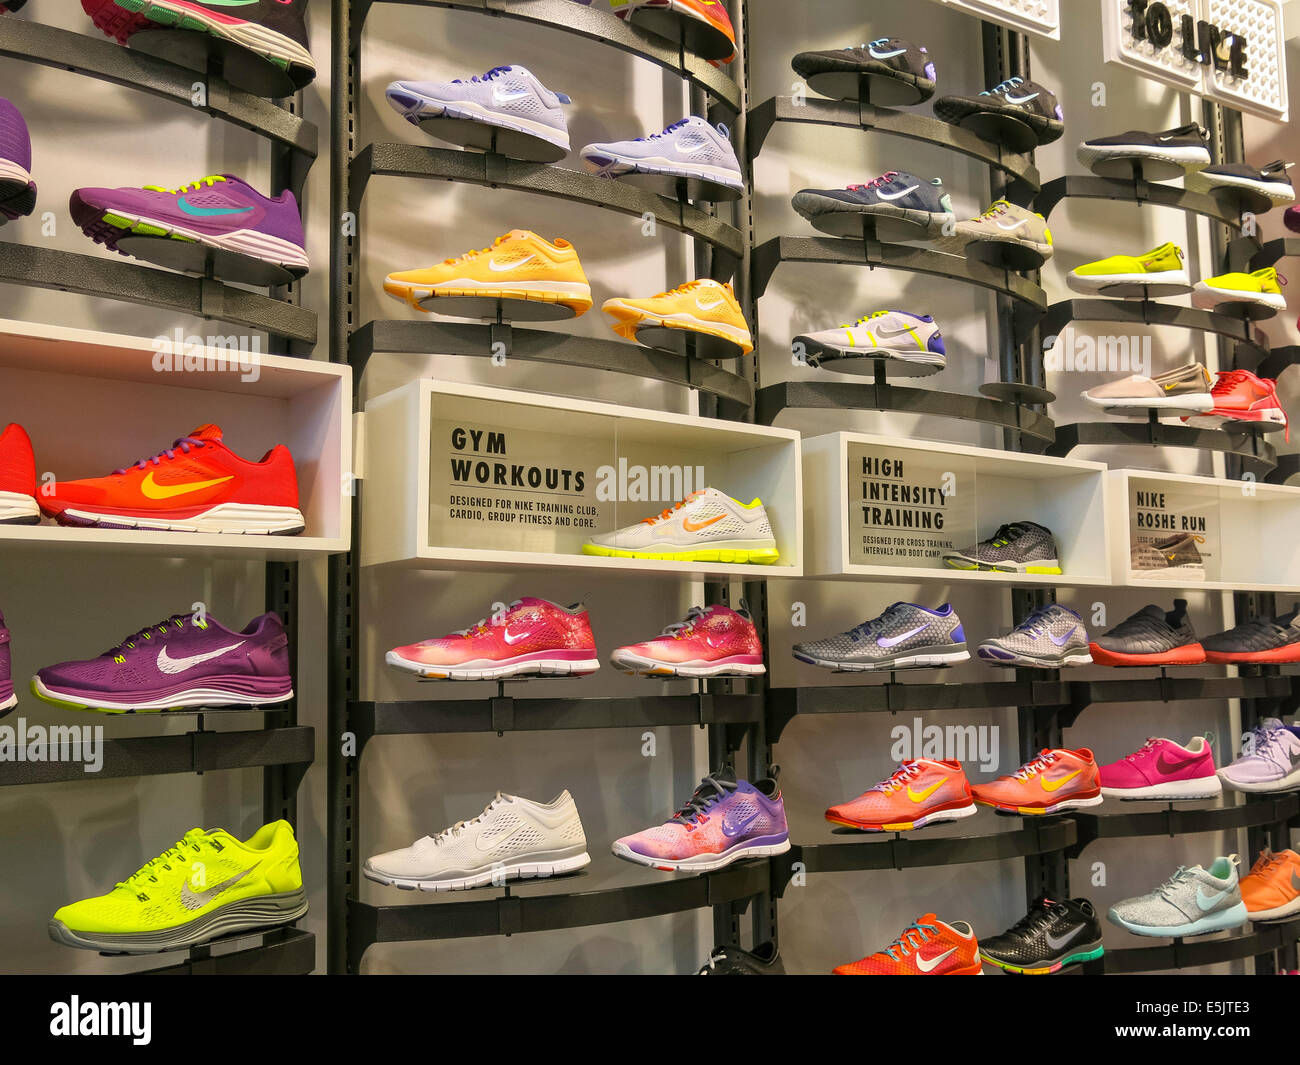 Nike Shoe Display NYC